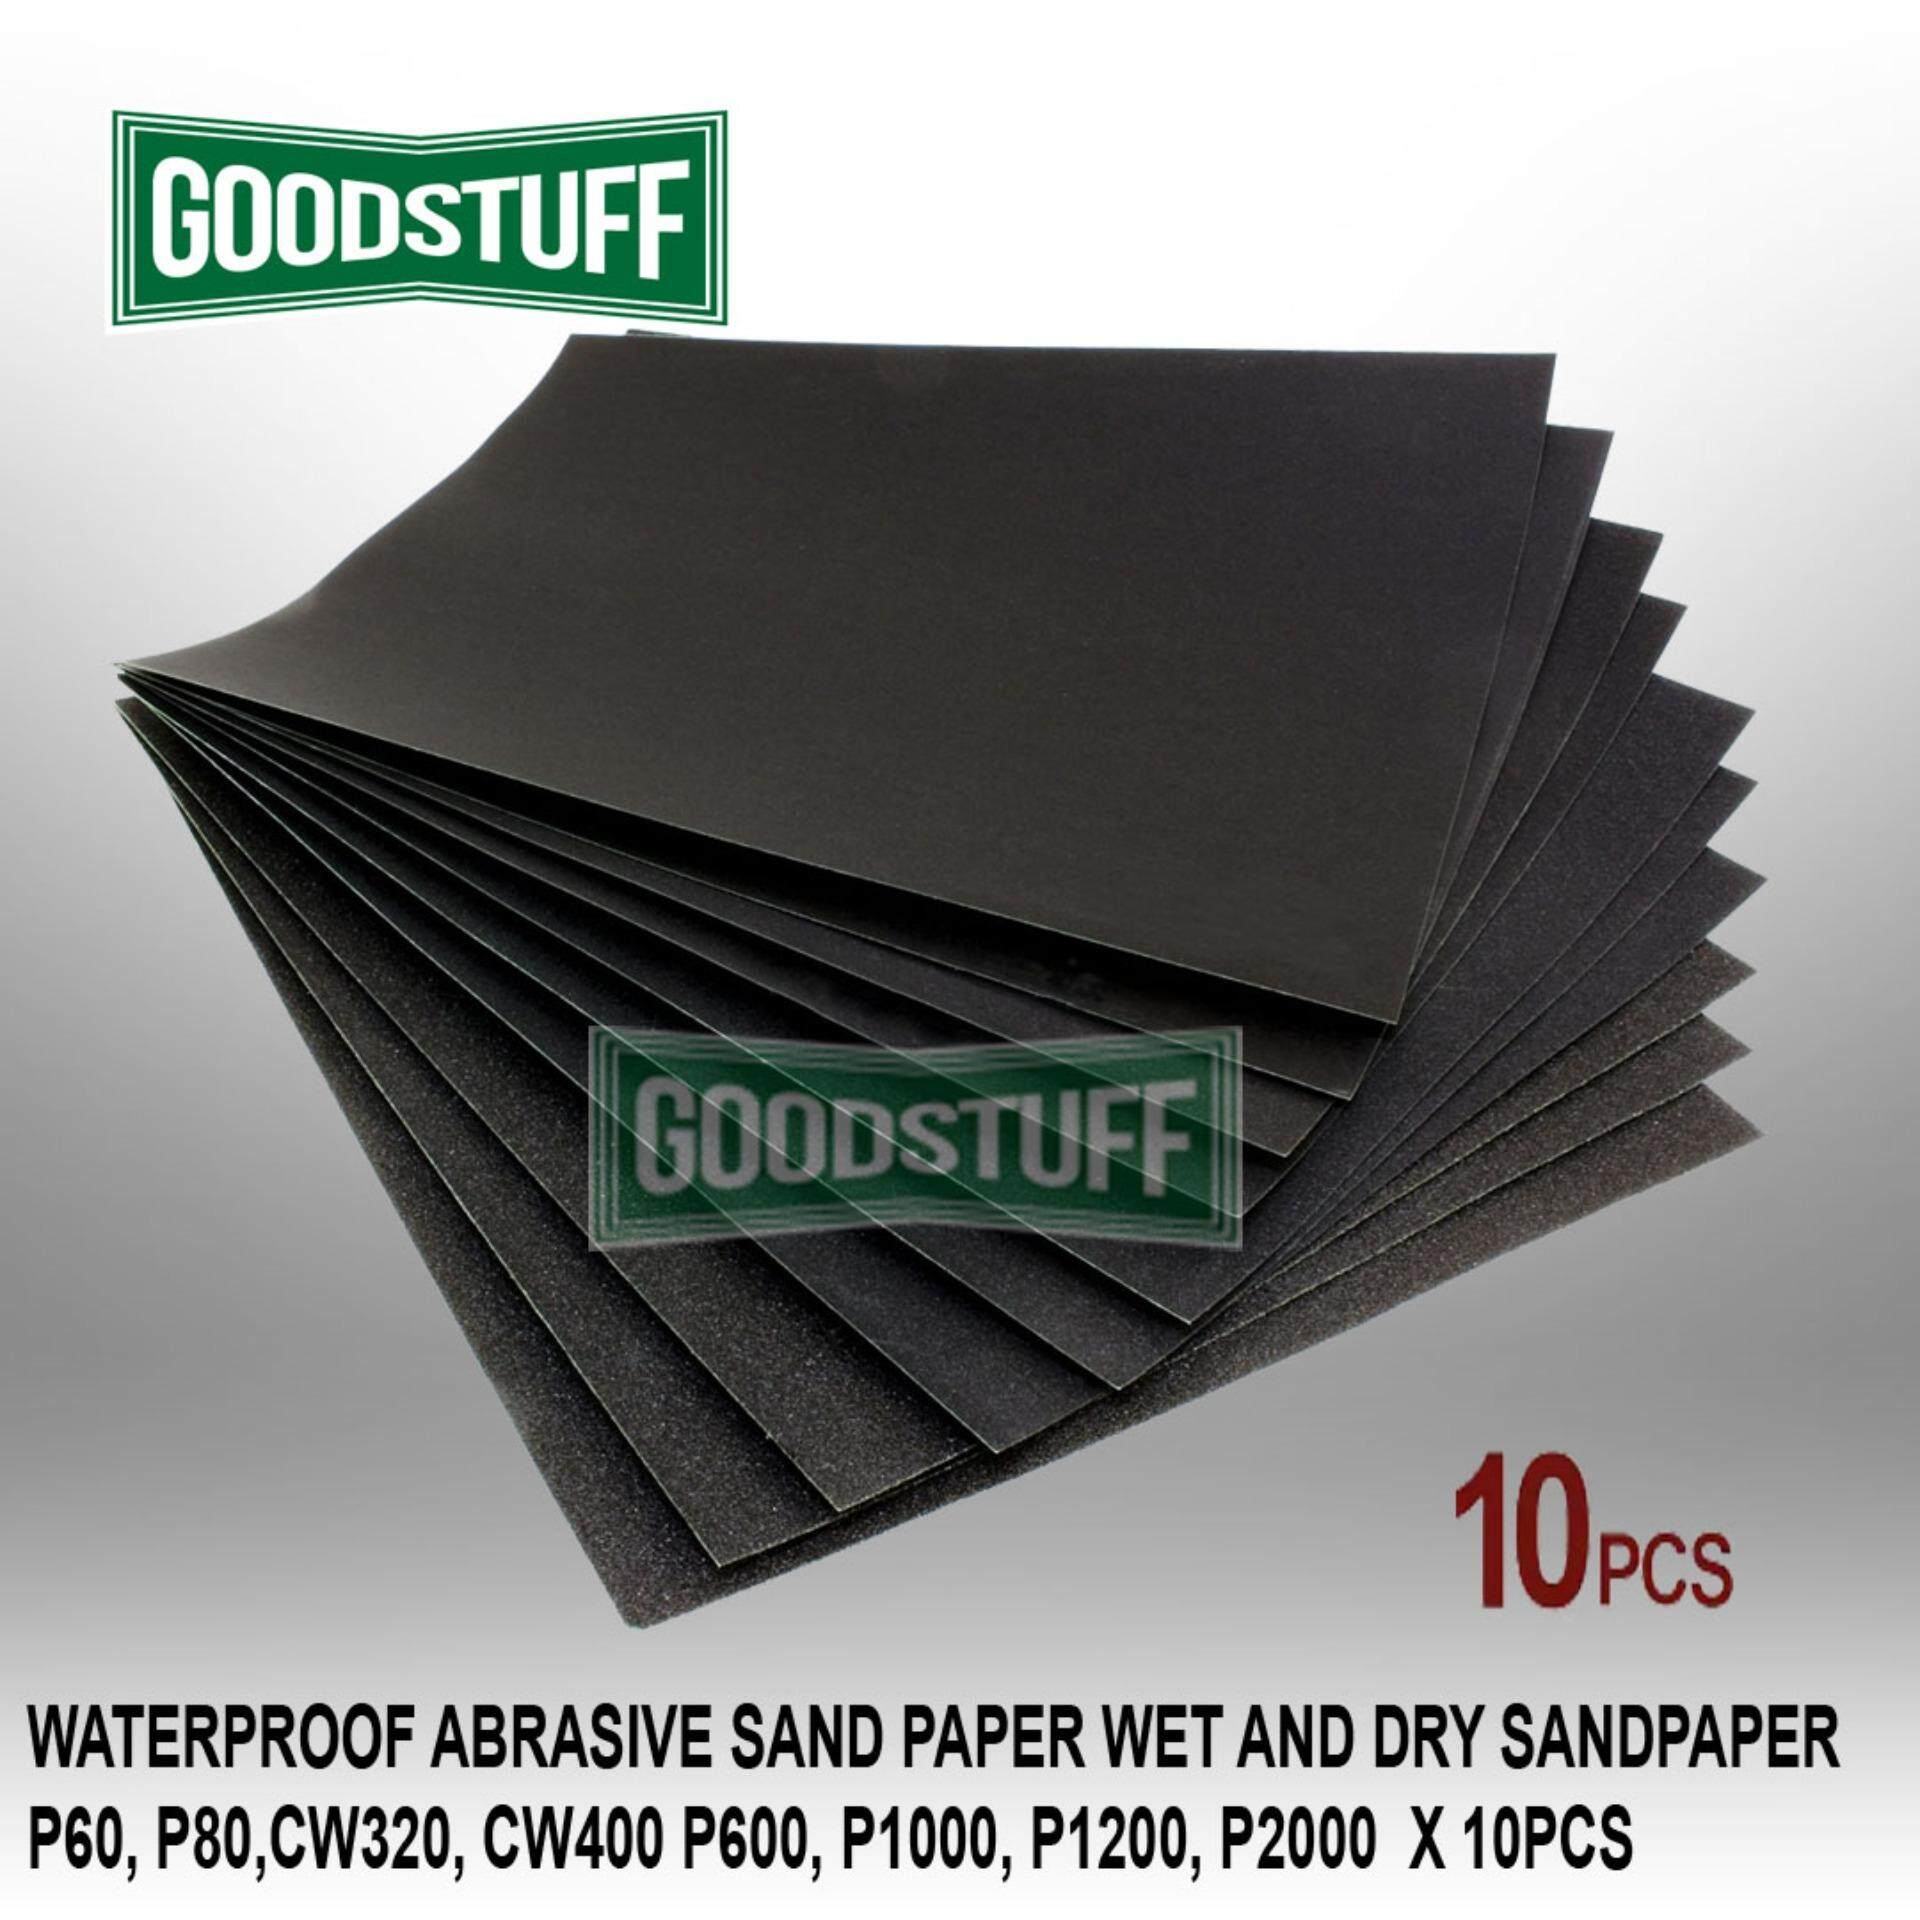 WATERPROOF ABRASIVE SAND PAPER WET AND DRY SANDPAPER X10PCS